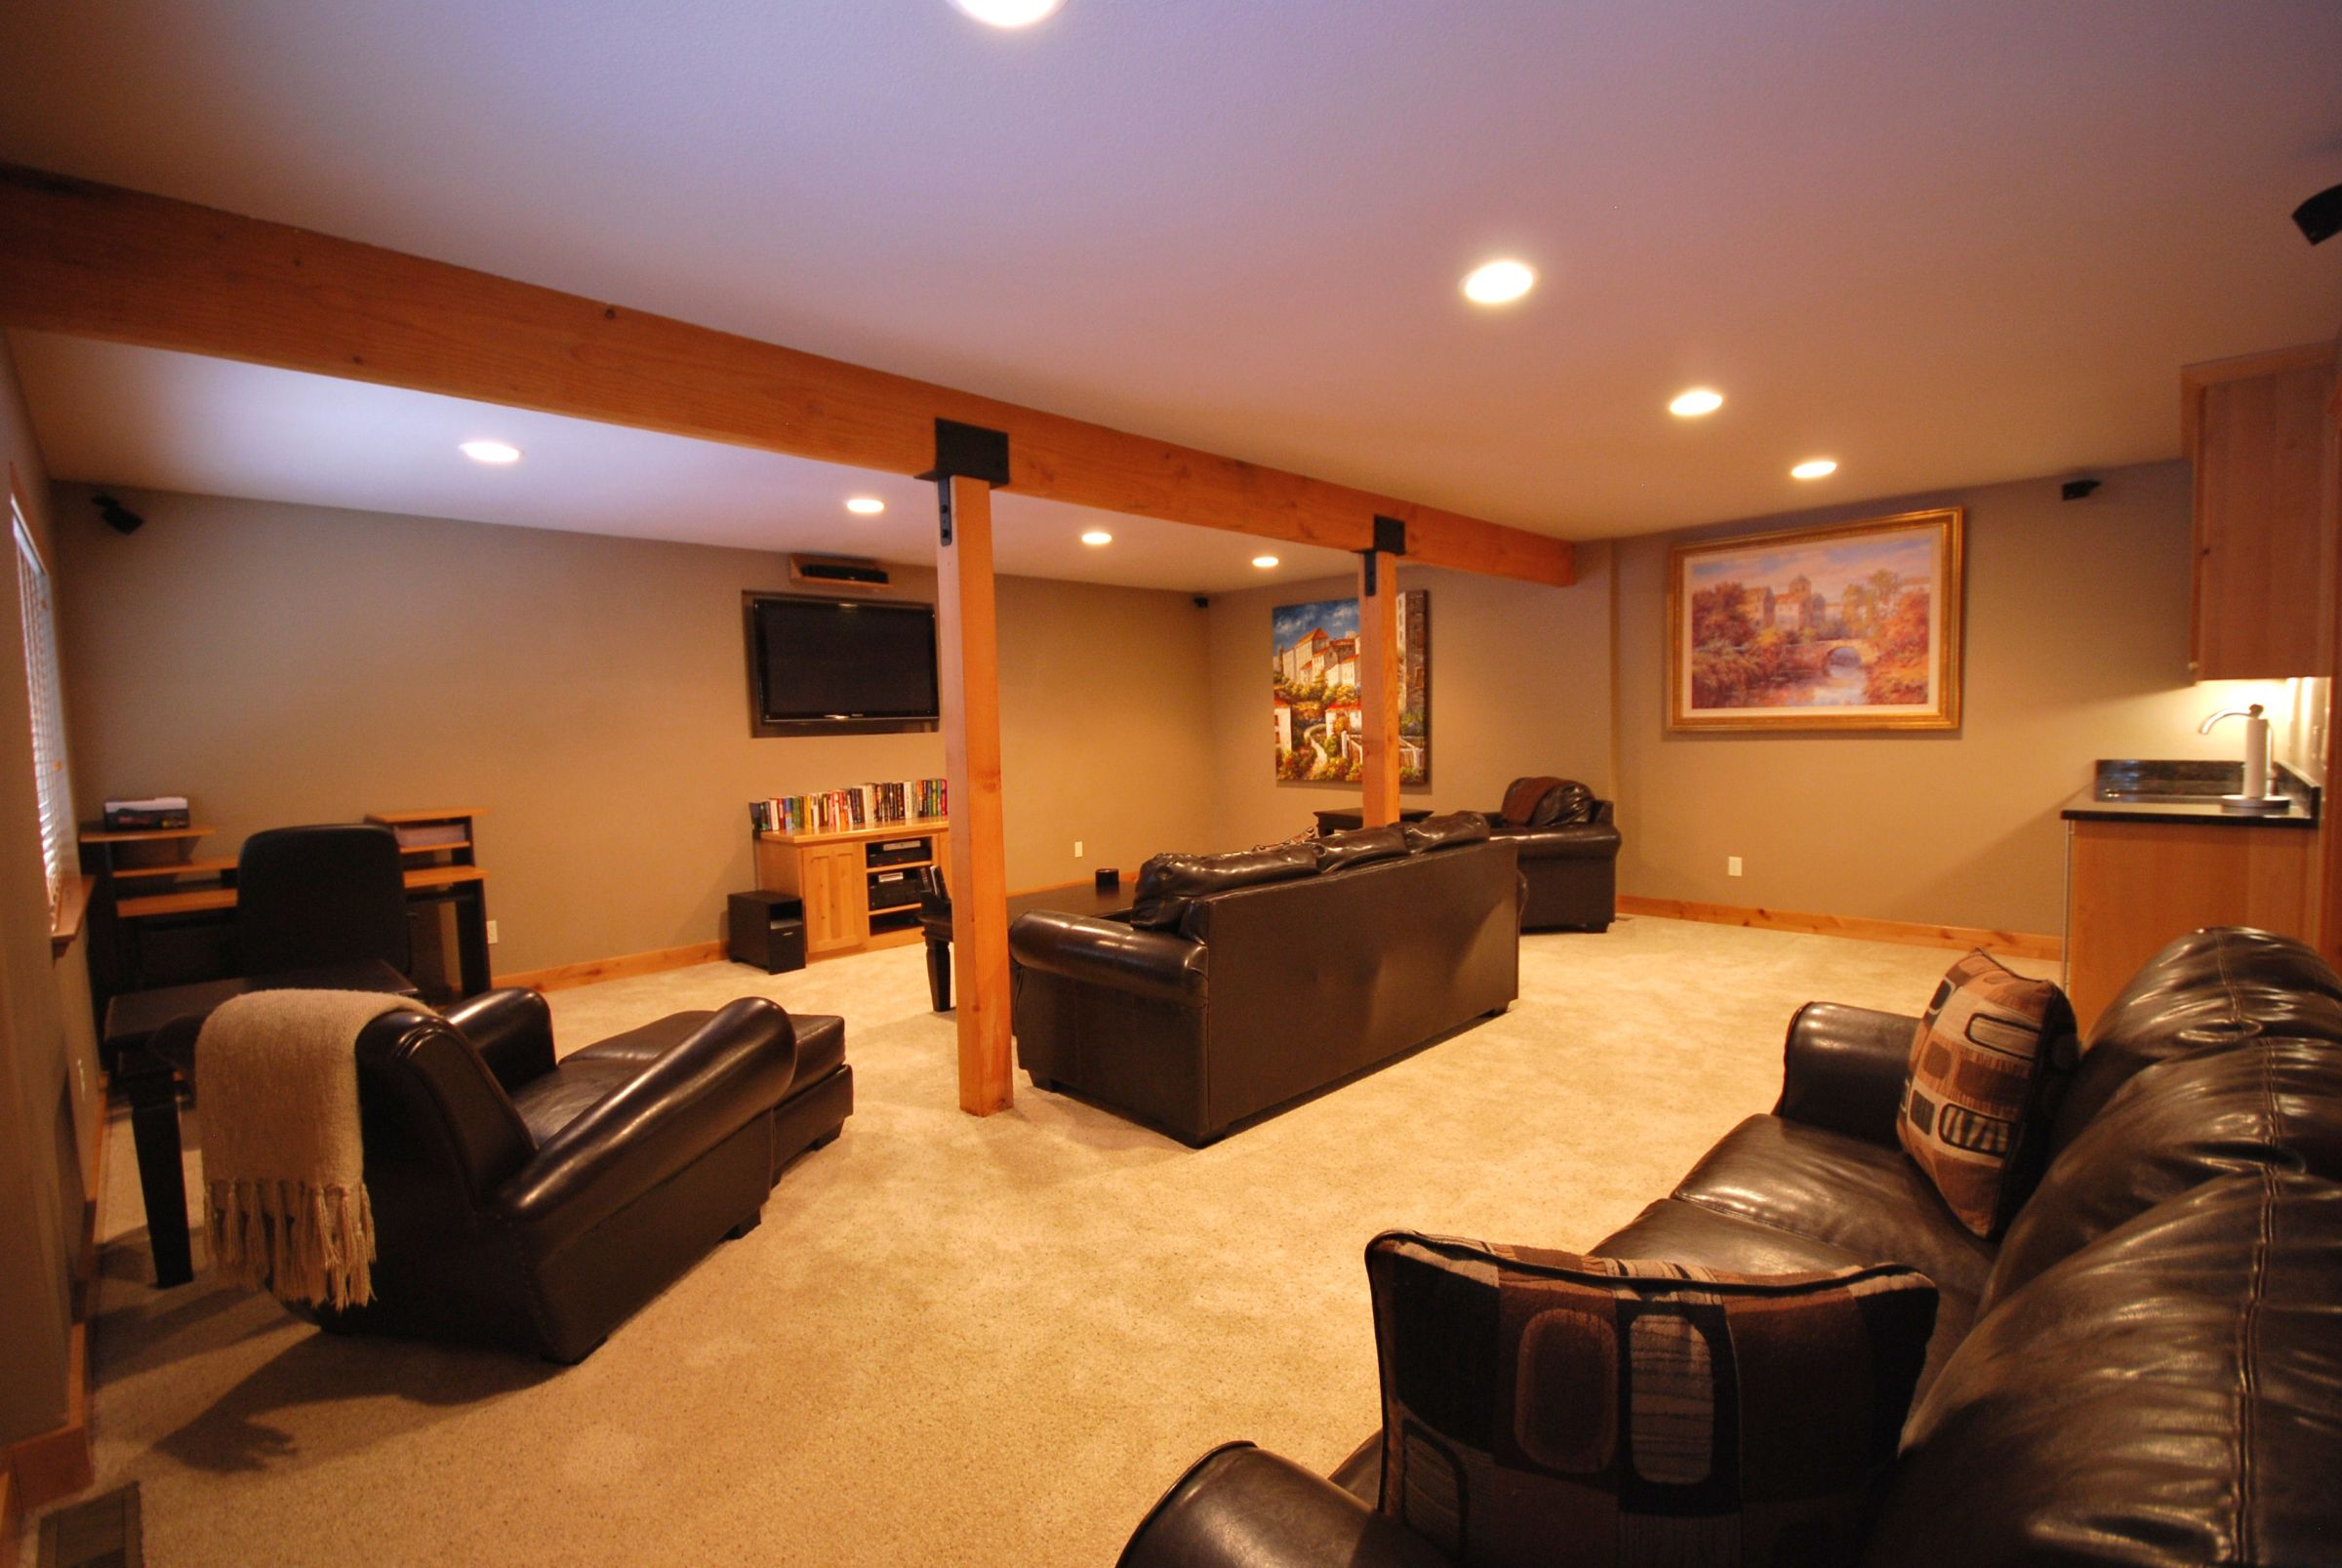 Enjoy this large media room with family & friends.